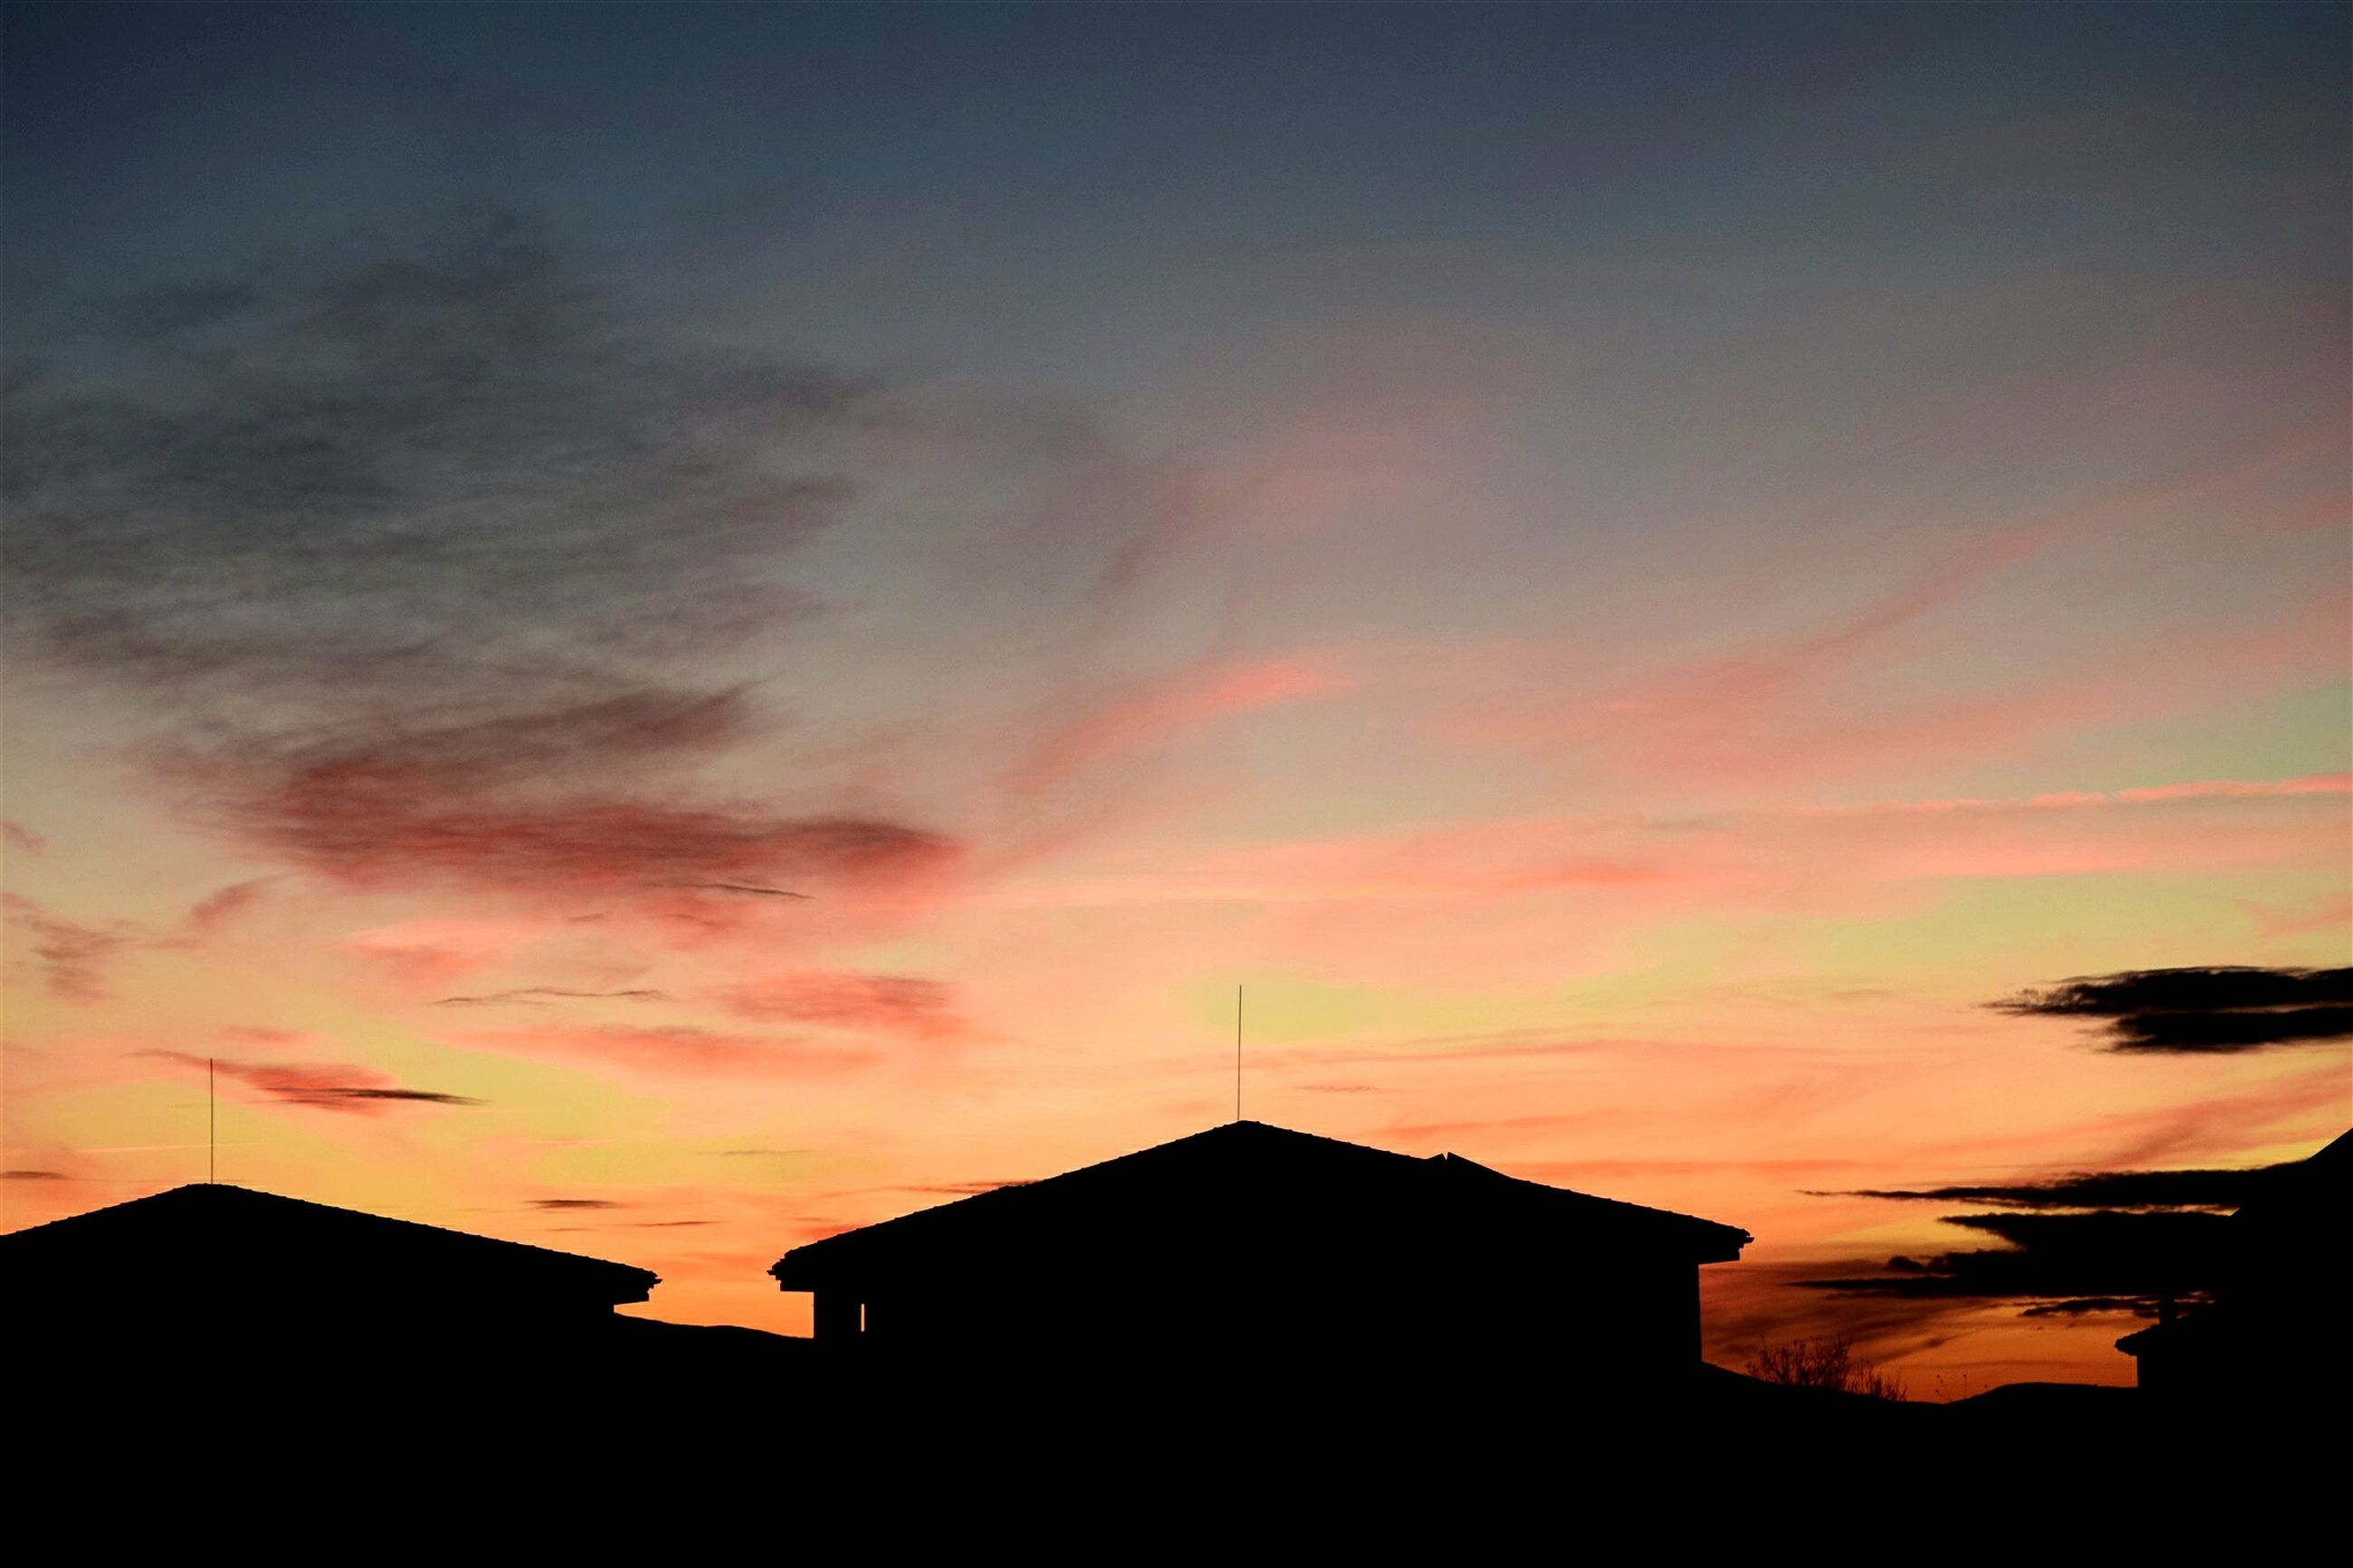 building exterior, architecture, sunset, built structure, sky, silhouette, orange color, low angle view, city, cloud - sky, residential structure, building, residential building, house, cloud, outdoors, no people, high section, dusk, dramatic sky